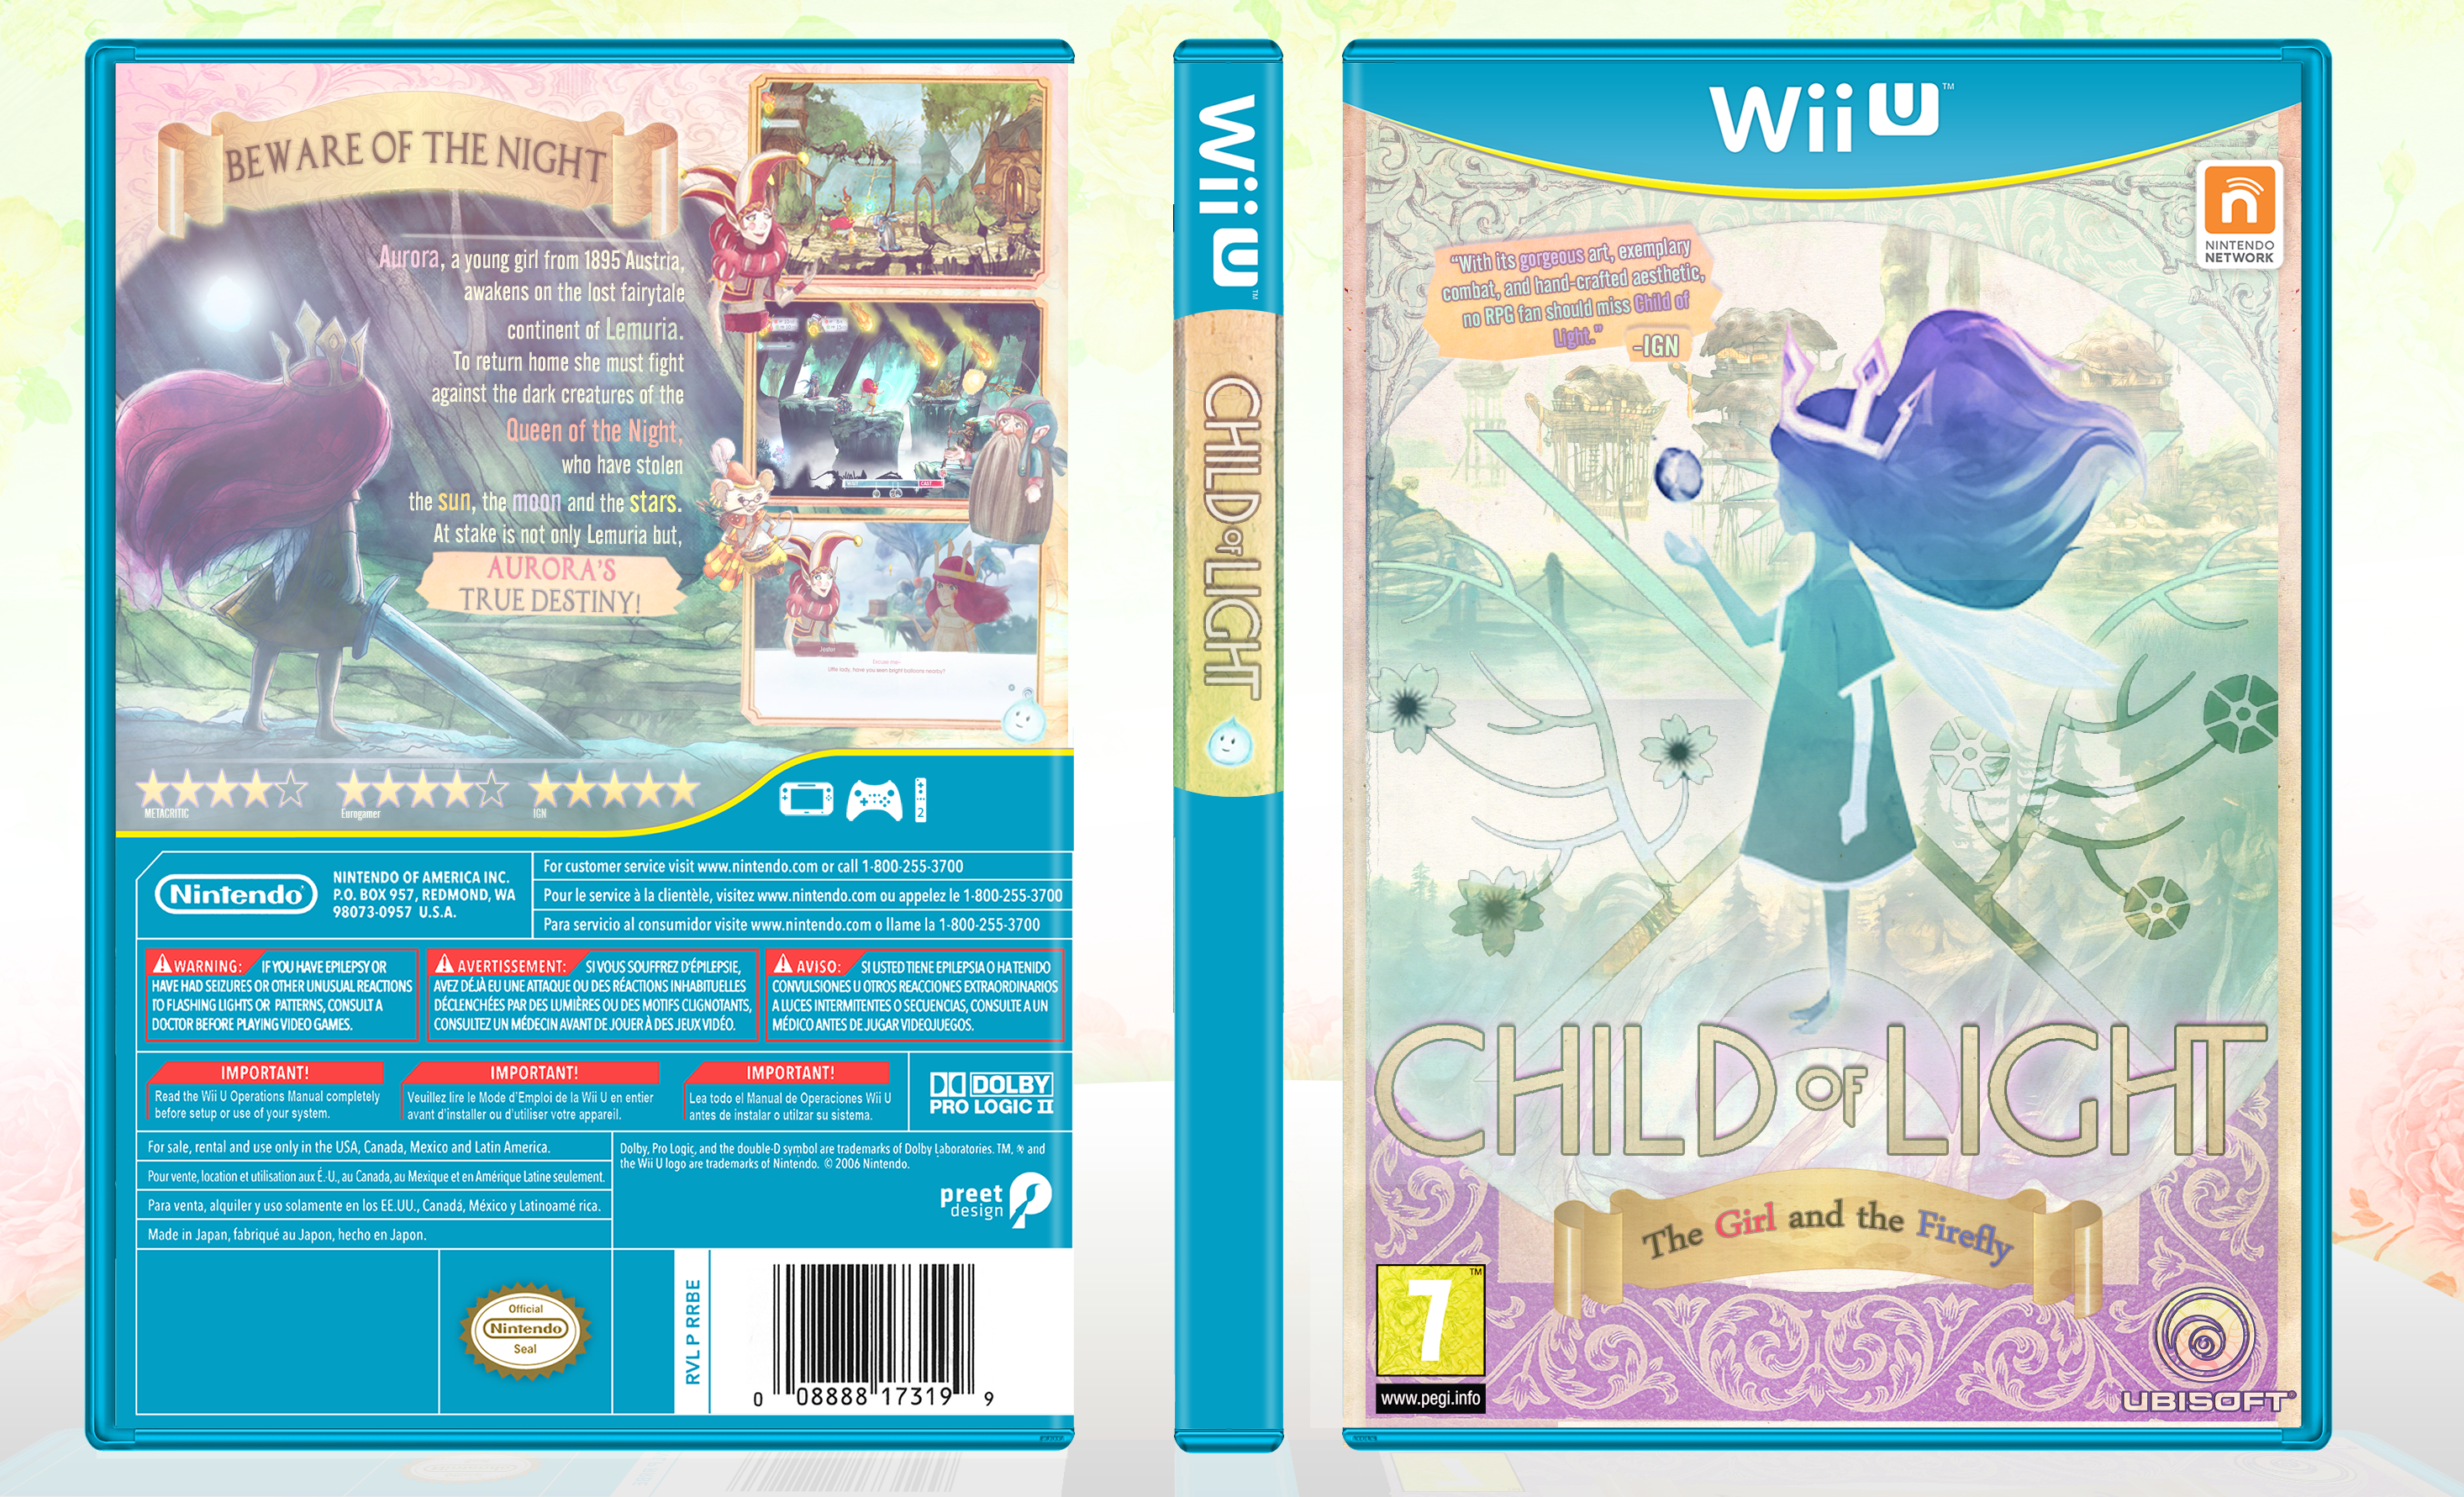 Child of Light box cover